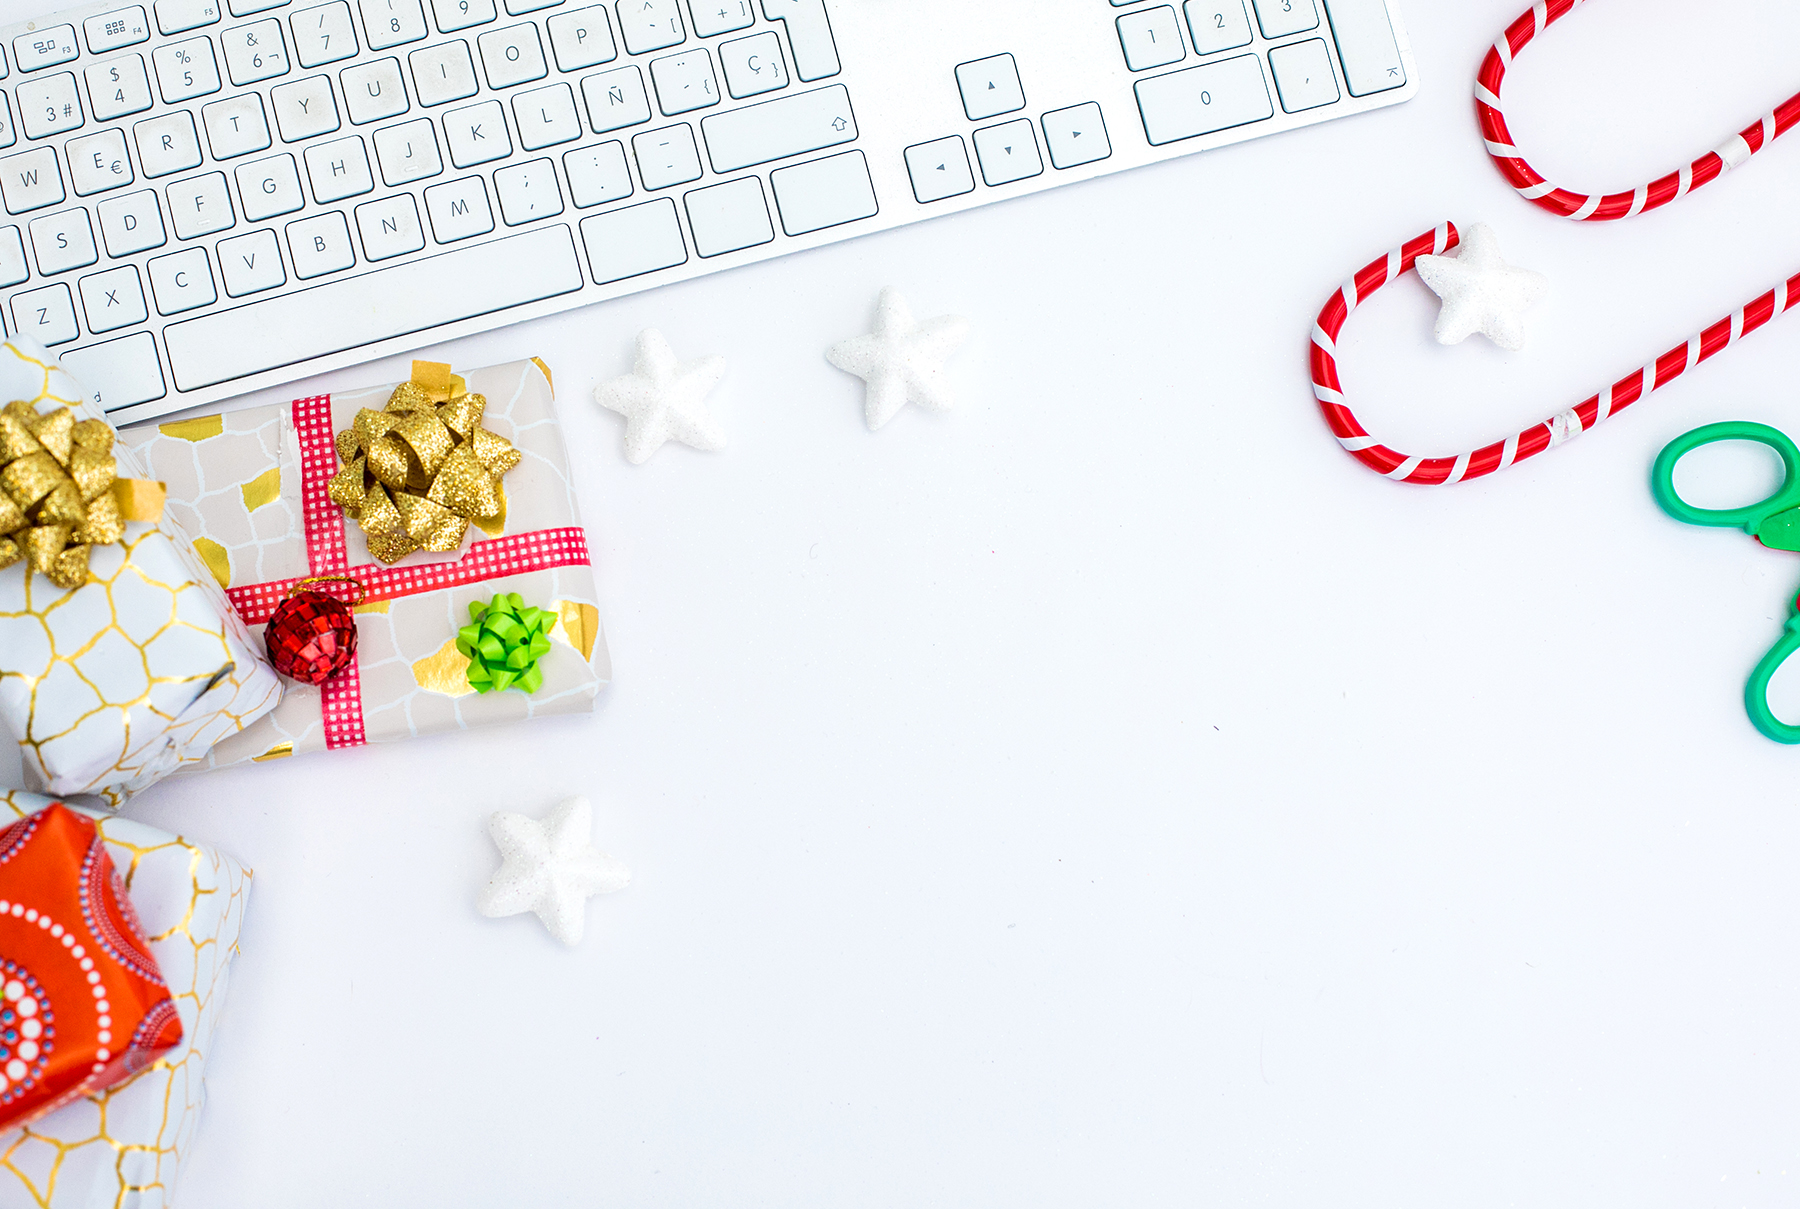 Office computer keyboard with holiday decorations and gifts